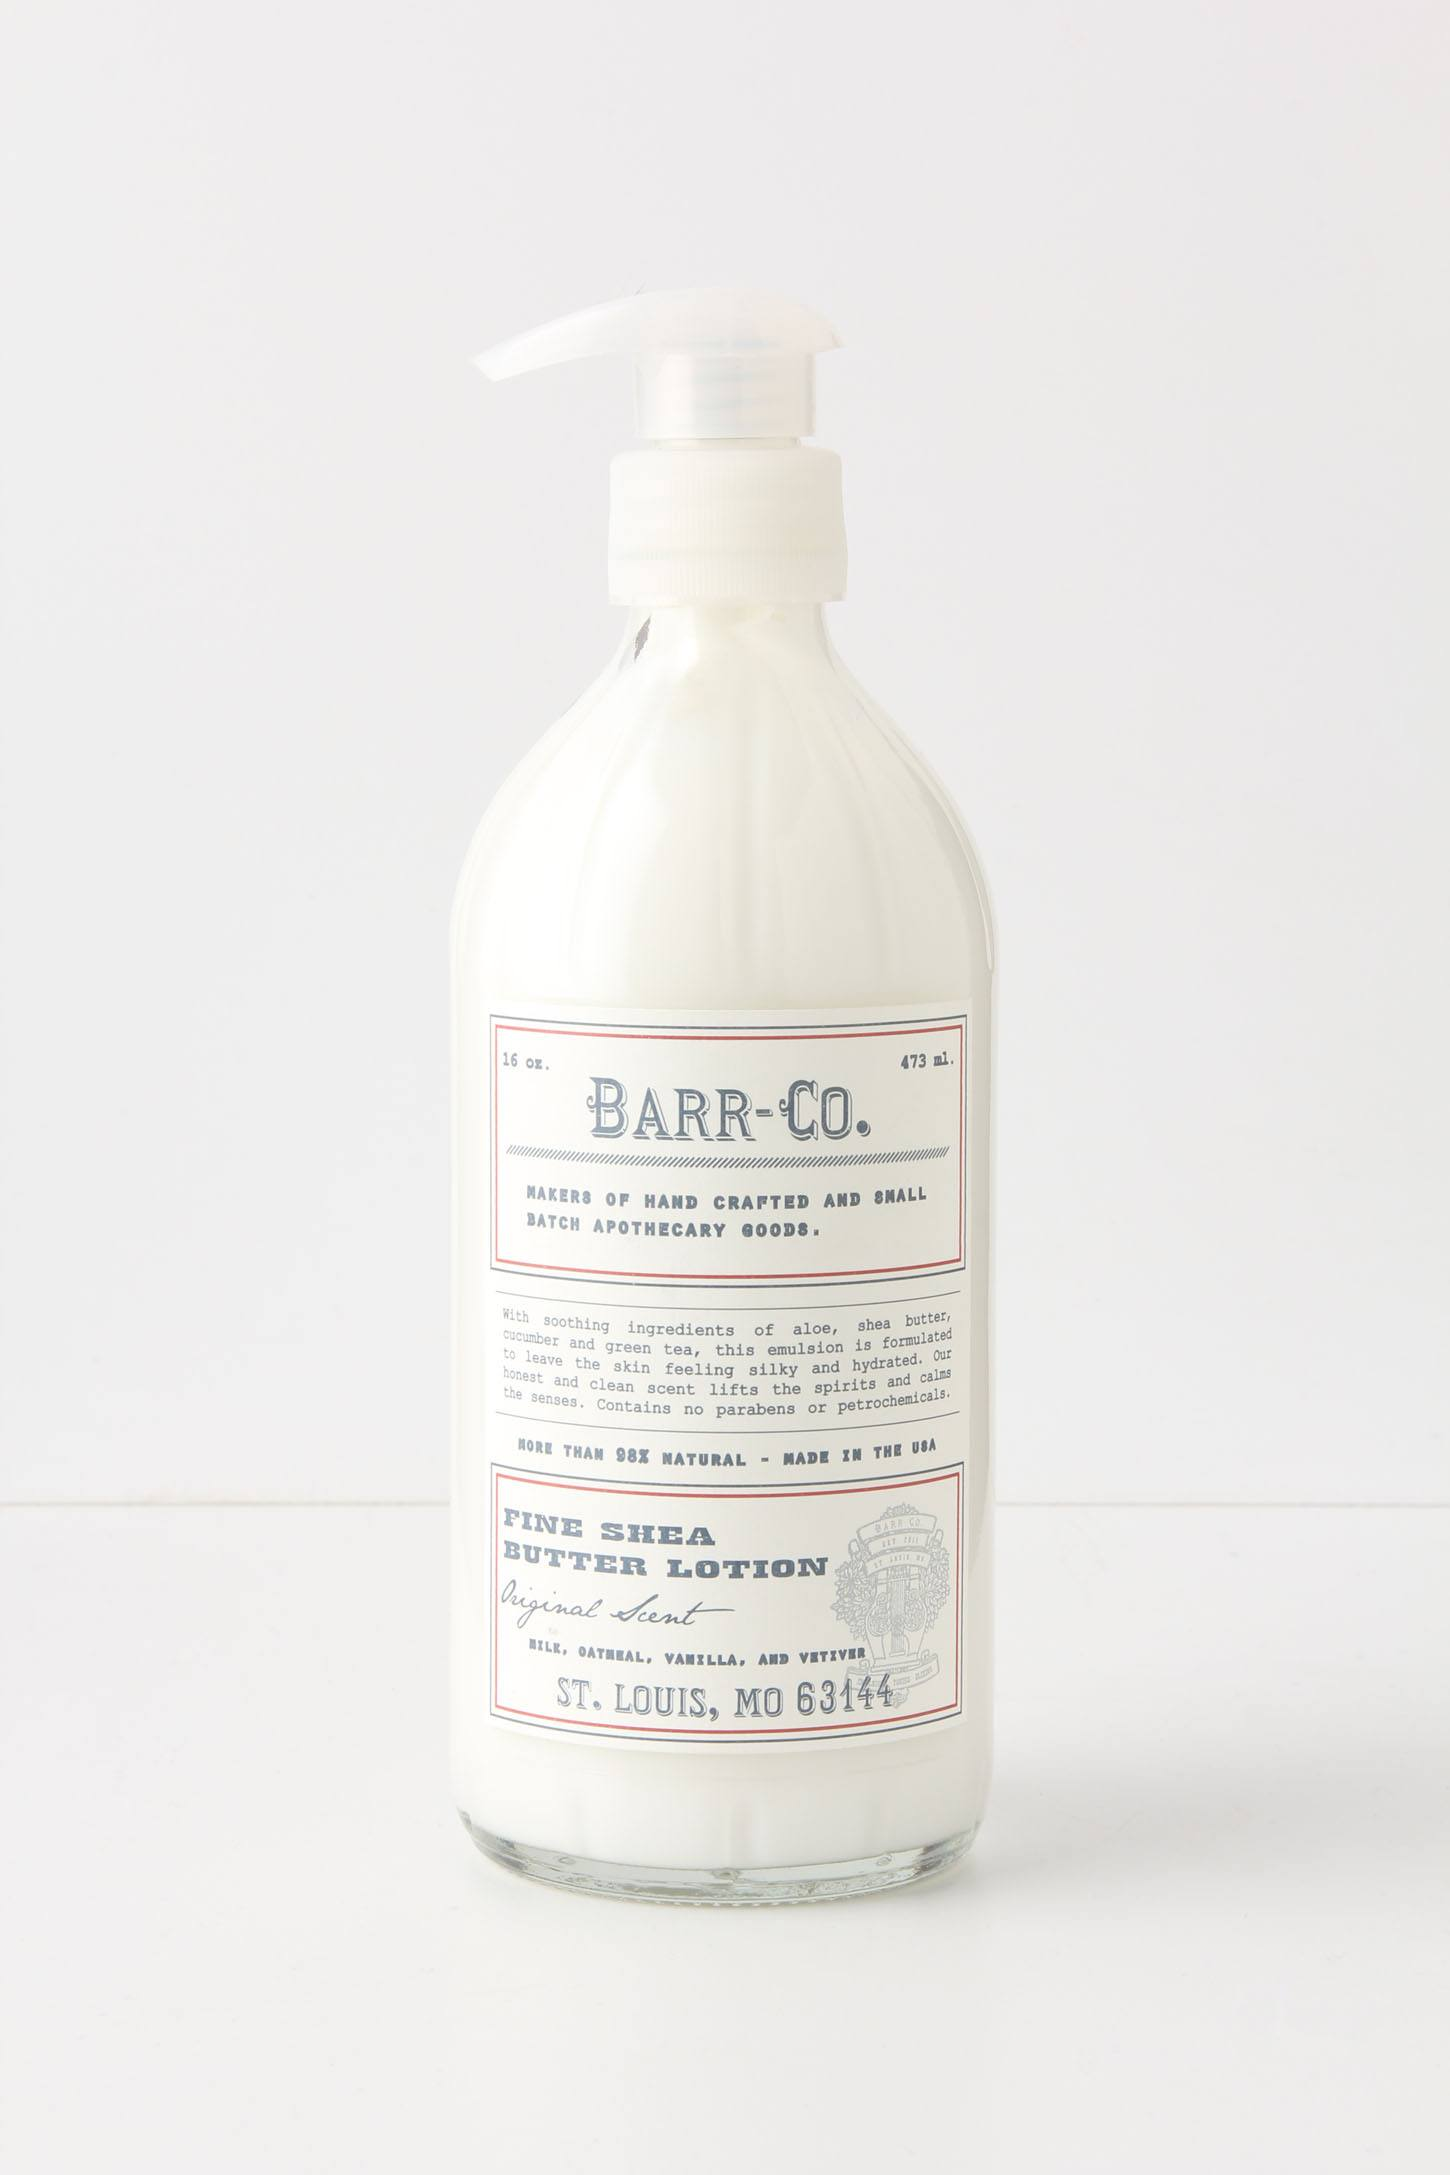 Barr-Co. Fine Shea Butter Lotion